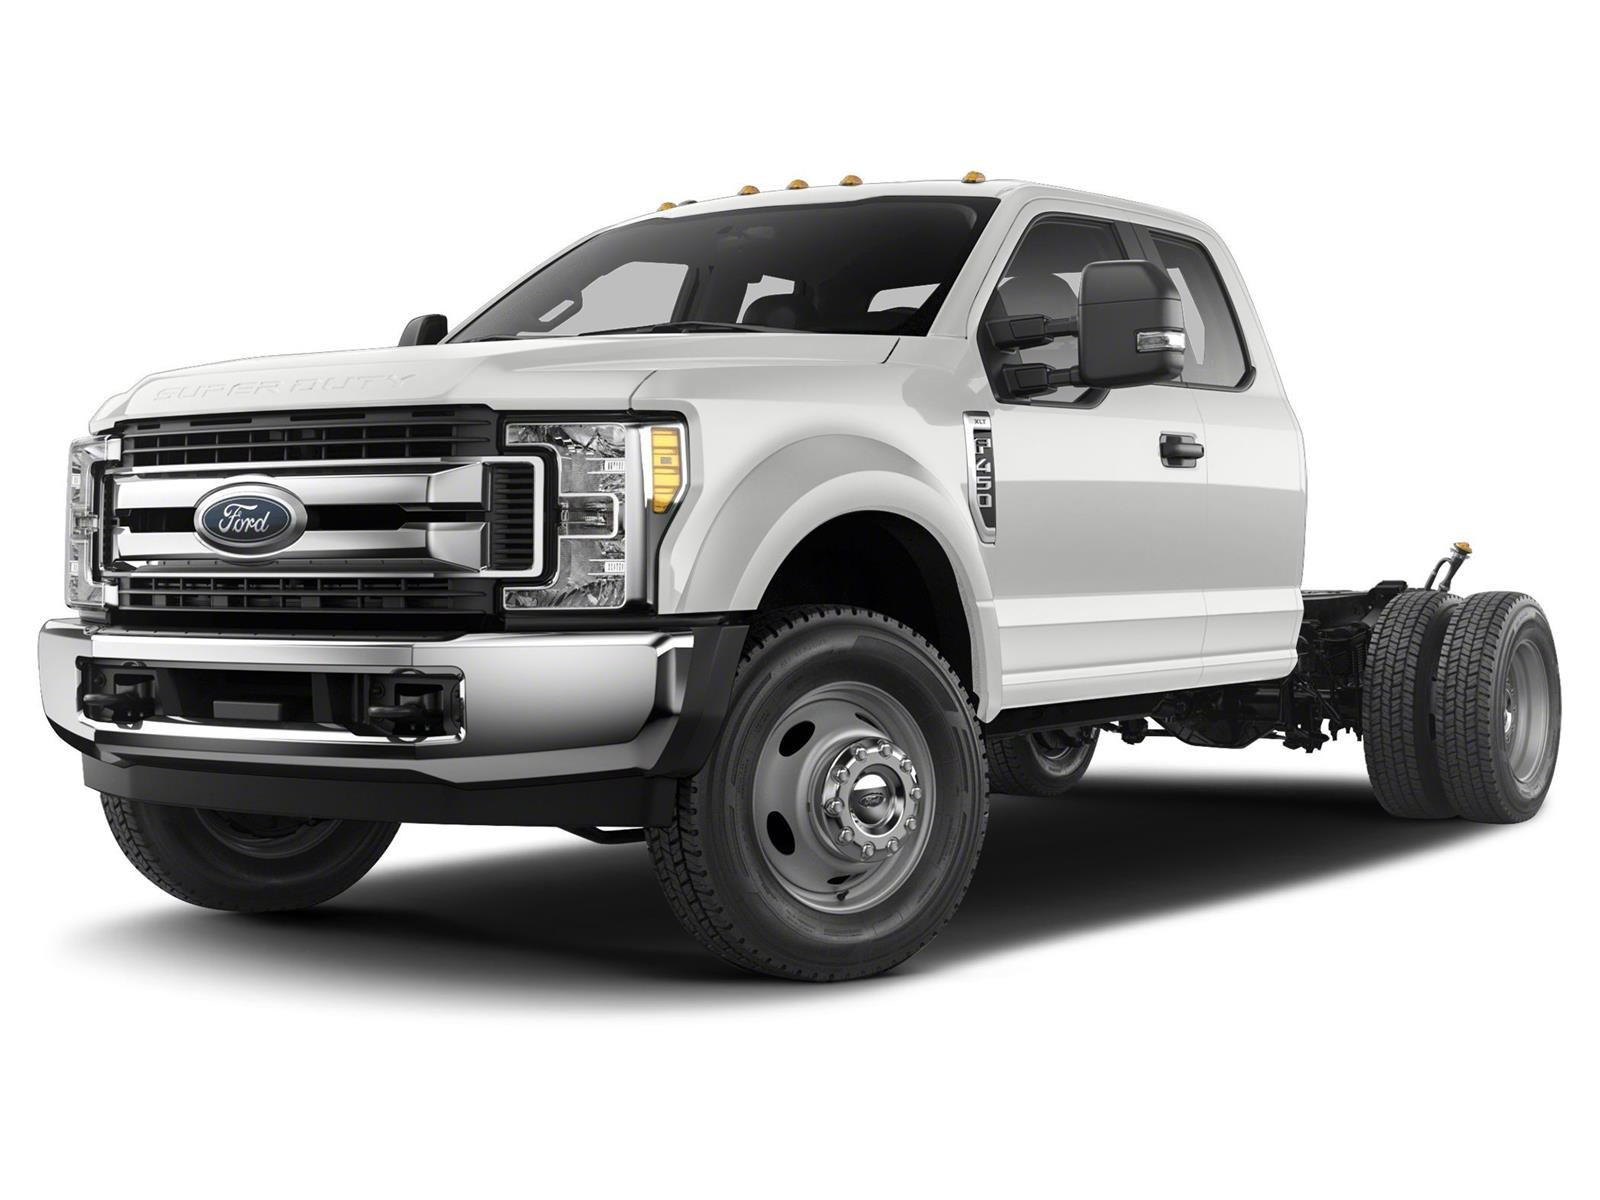 2019 F-550 Super Cab DRW 4x4, Cab Chassis #69425 - photo 1